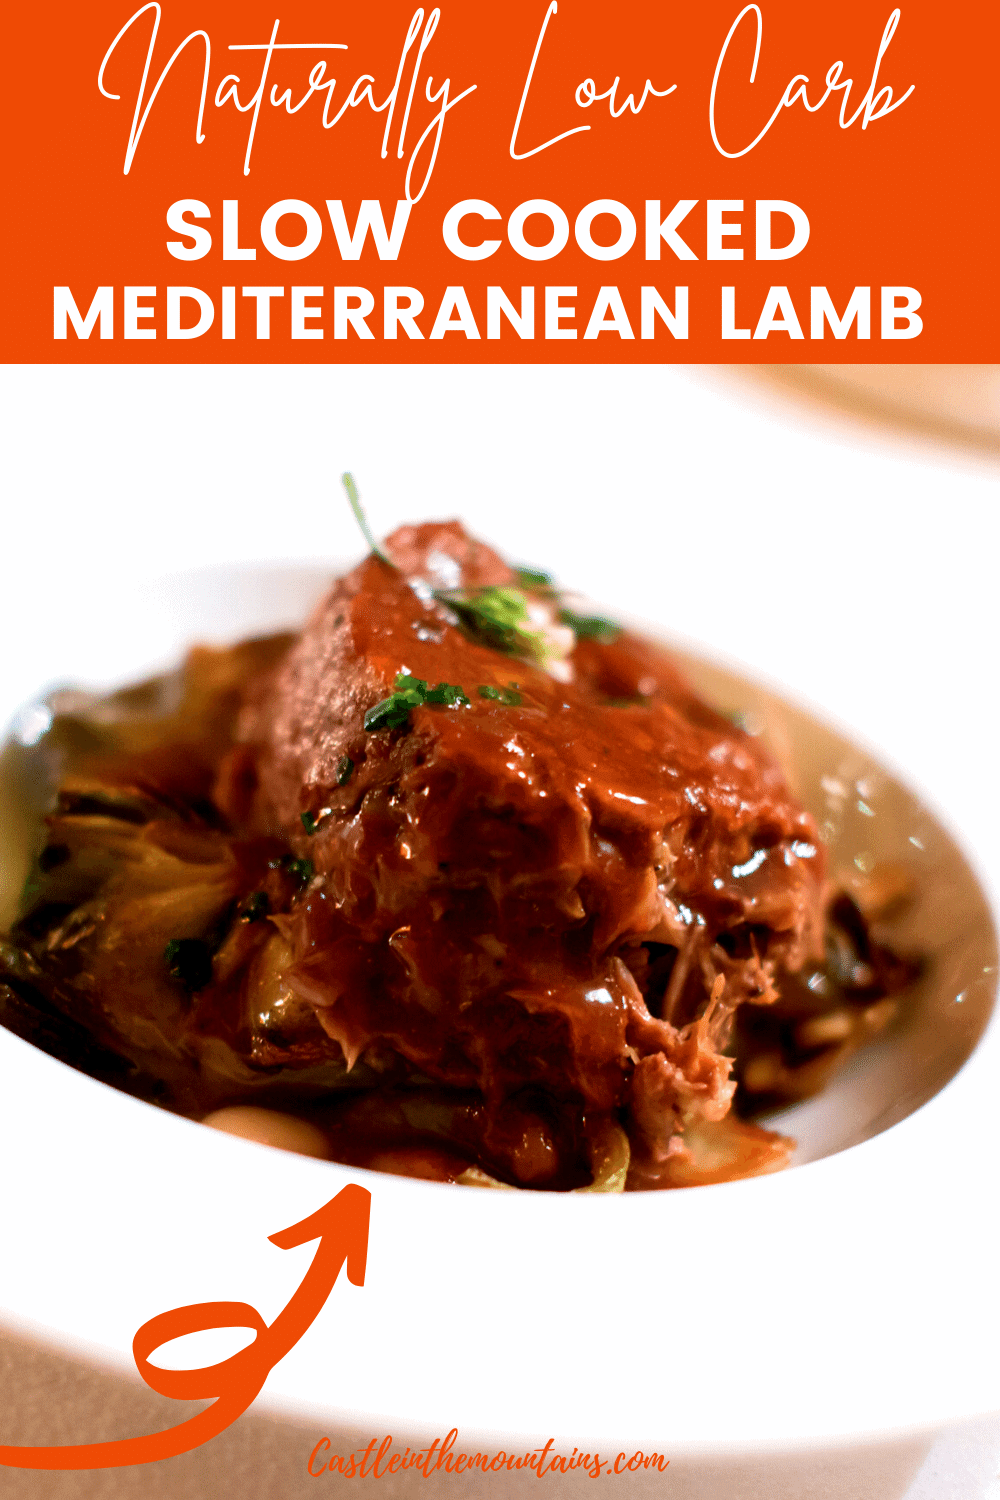 Slow Cooked Mediterranean Lamb - How to make tender lamb.